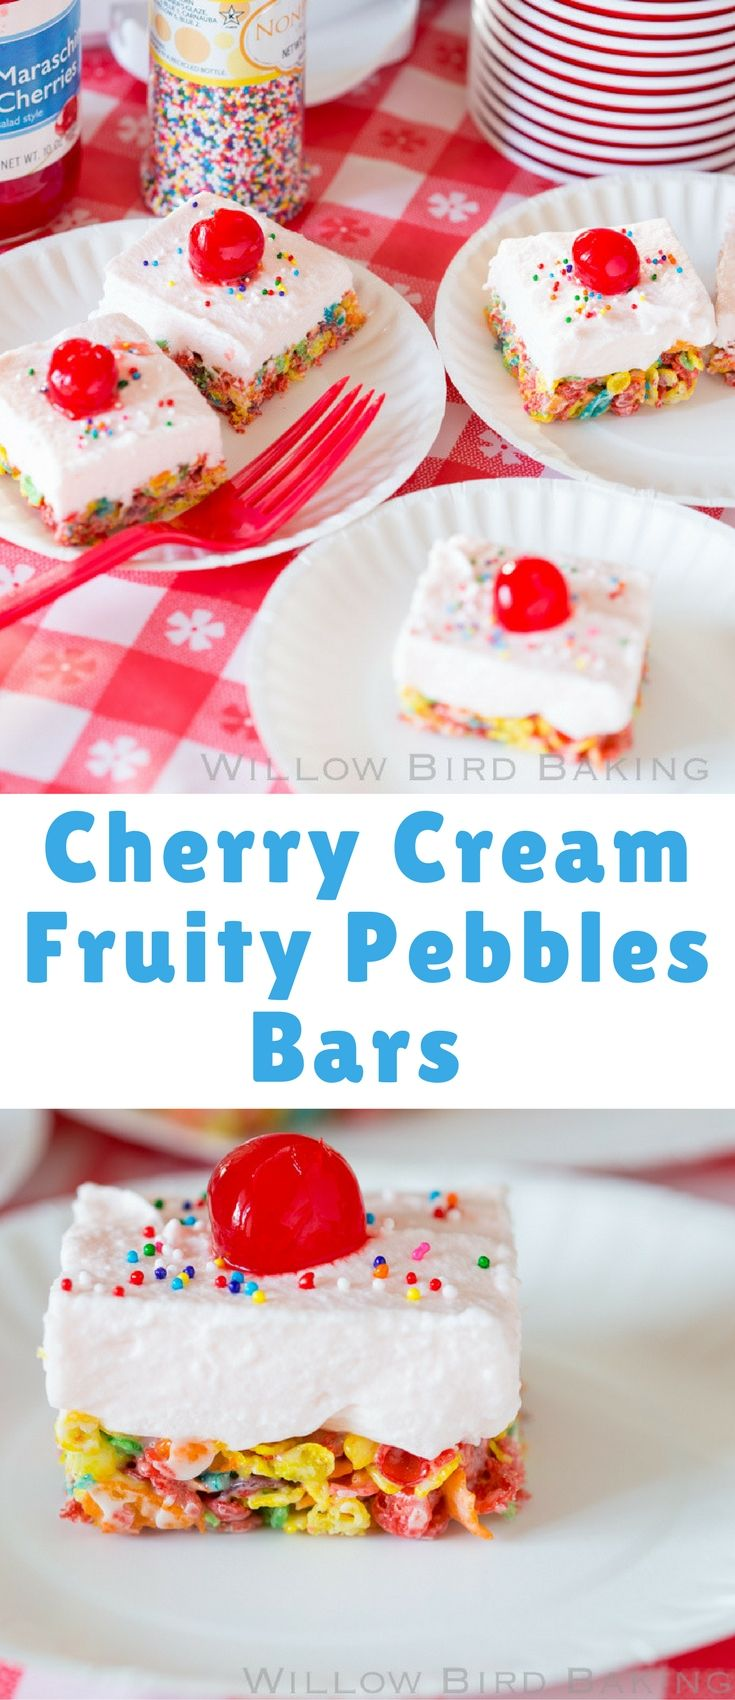 These Cherry Cream Fruity Pebbles Bars start with a marshmallow and Fruity Pebbles base. They're topped with a fluffy cloud of cherry mousse with a little boozy tailgating zing. Just leave out the alcohol if you're serving children.